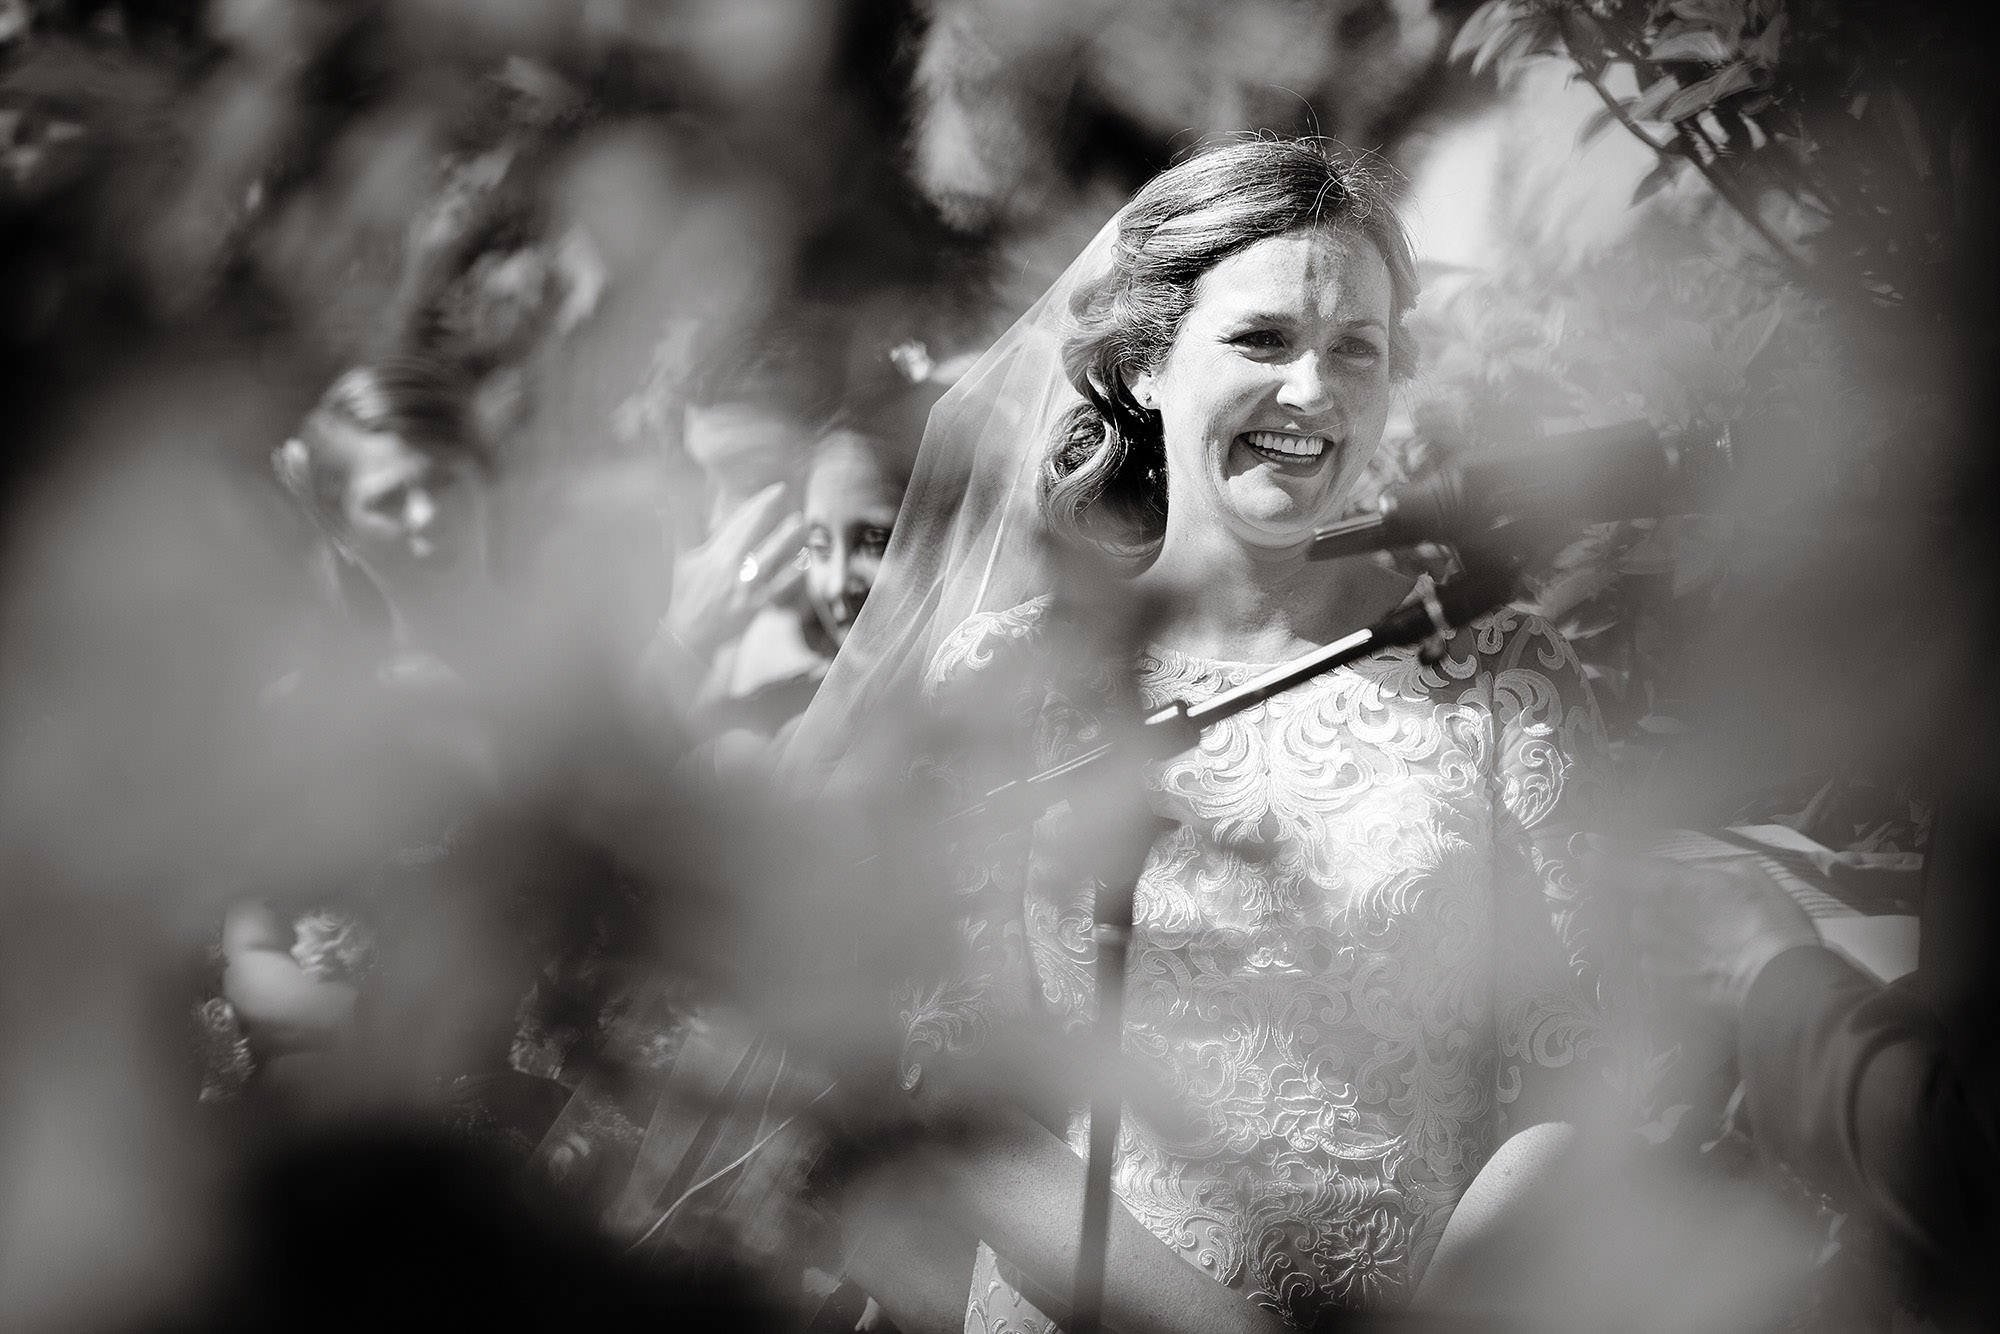 The bride smiles during the Mountain View Grand Wedding ceremony.